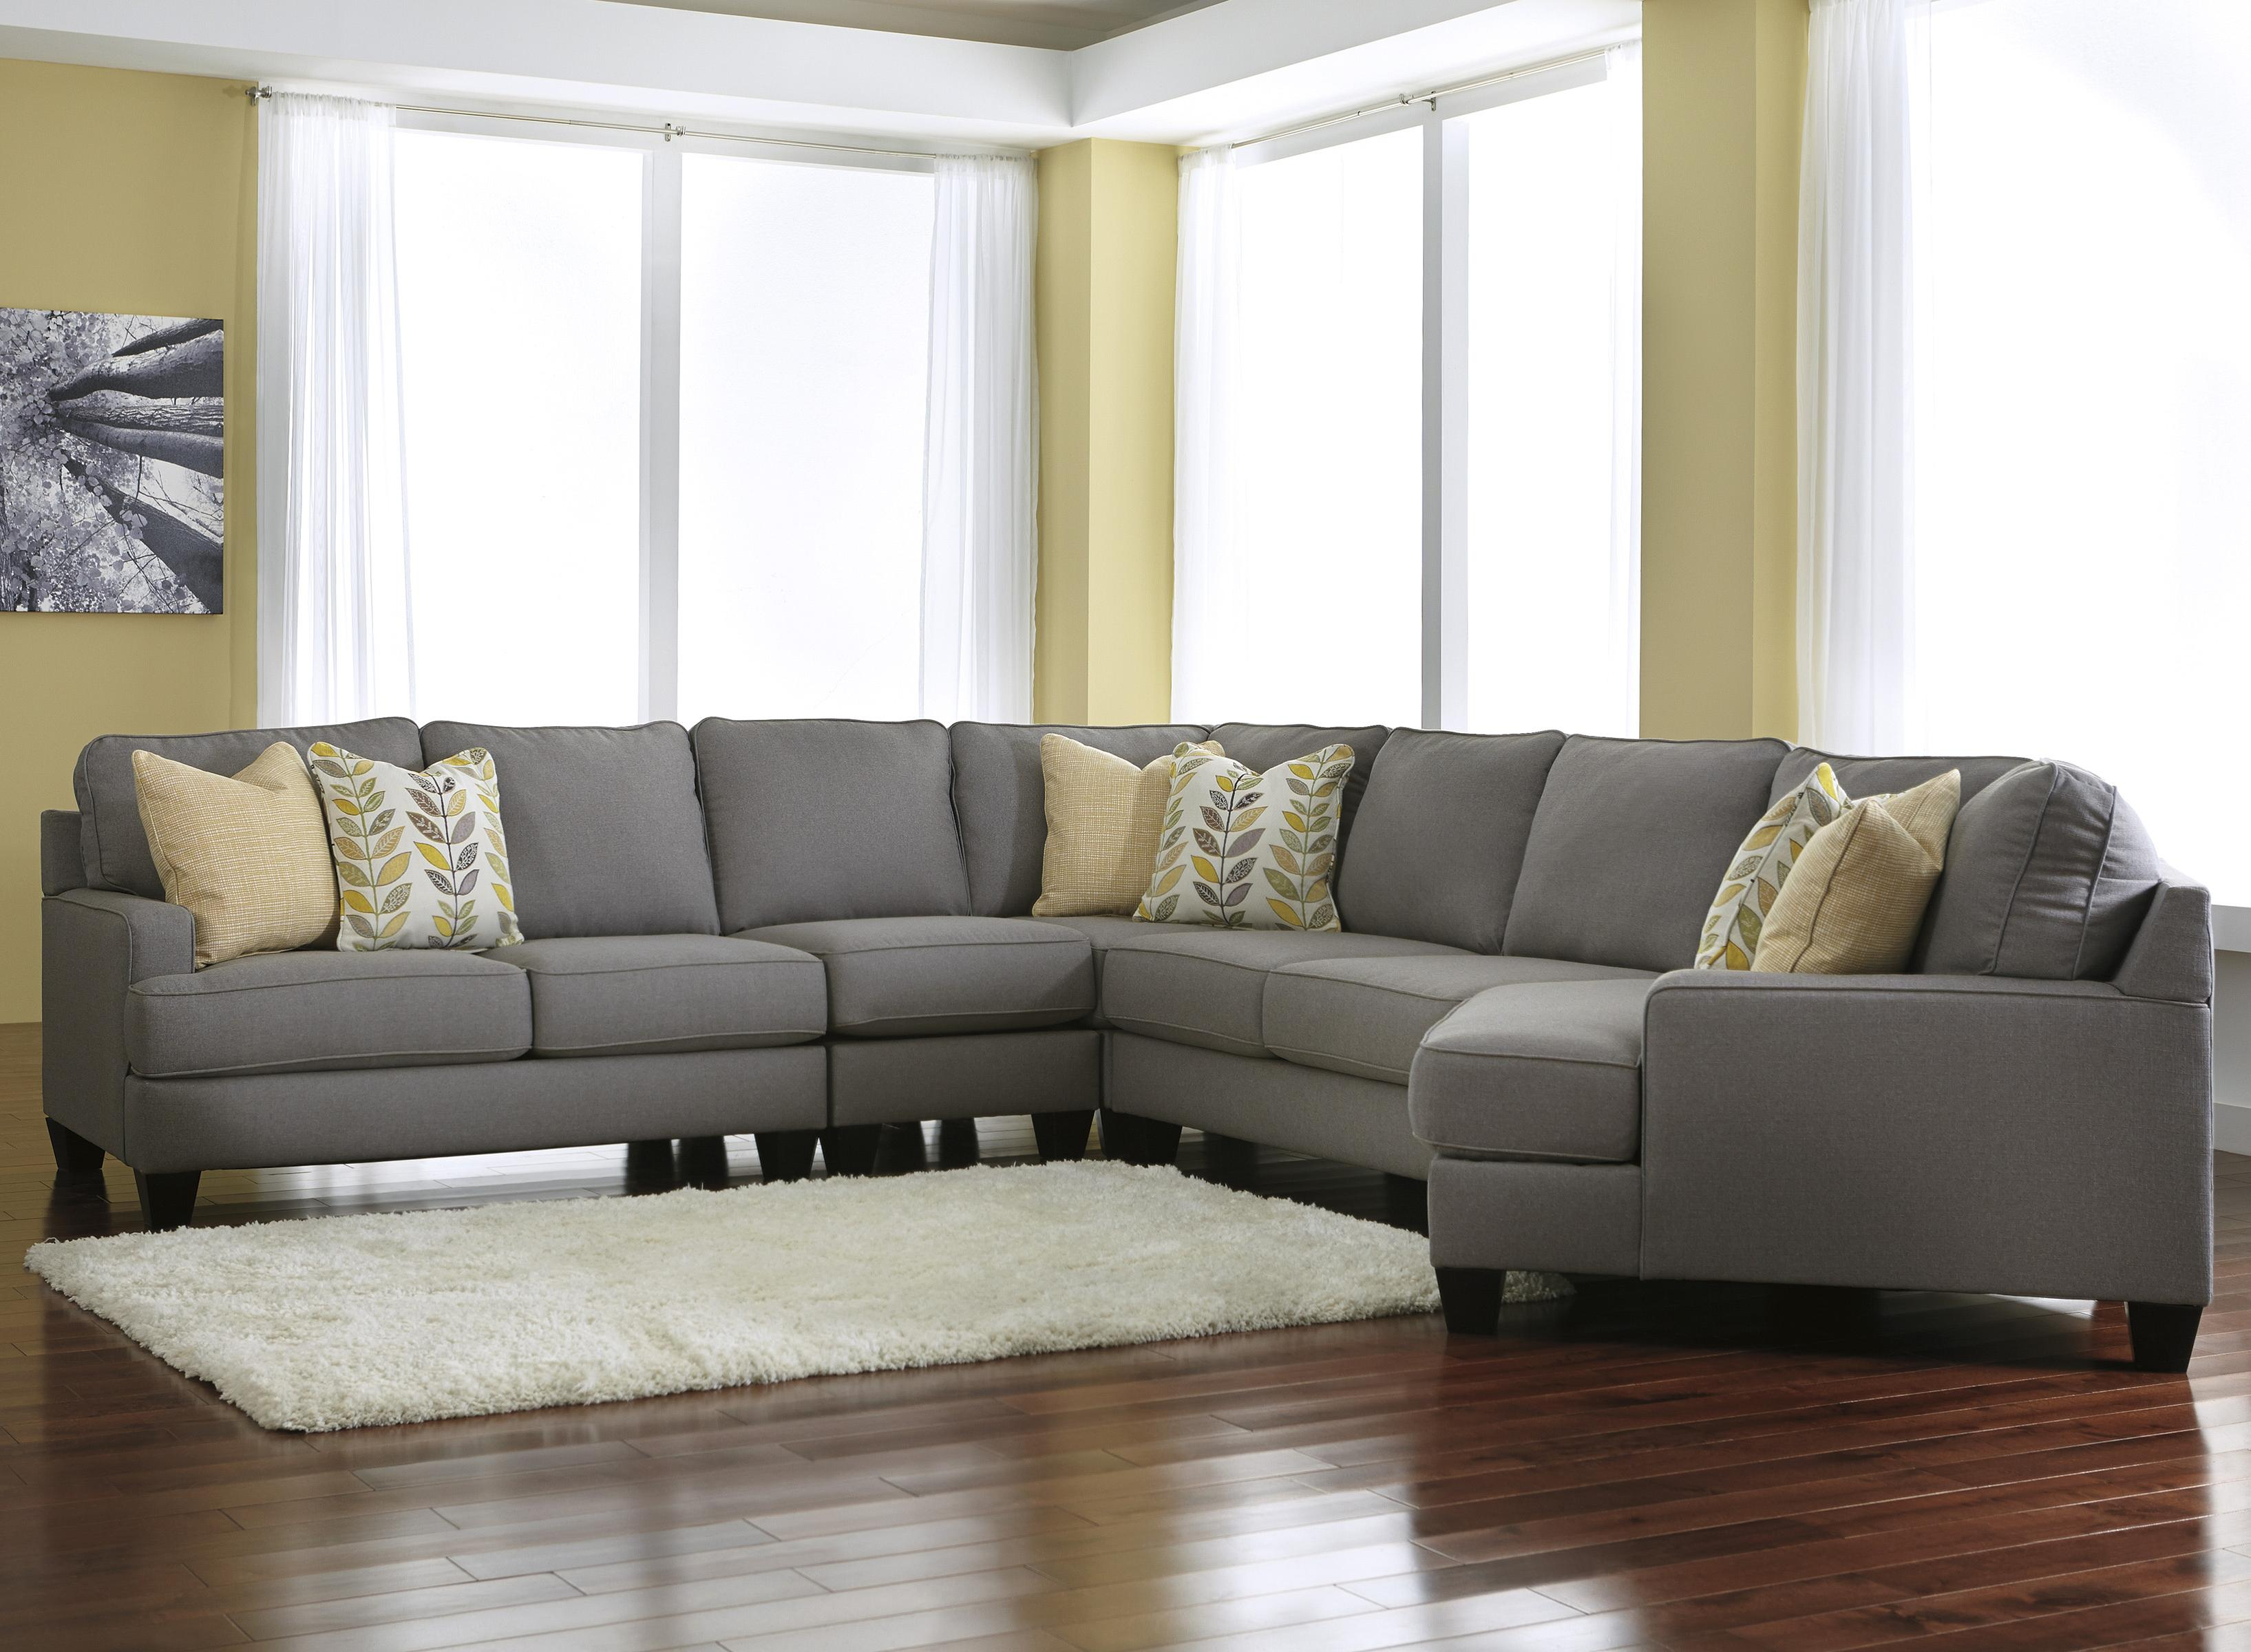 Modern 5Piece Sectional Sofa with Right Cuddler